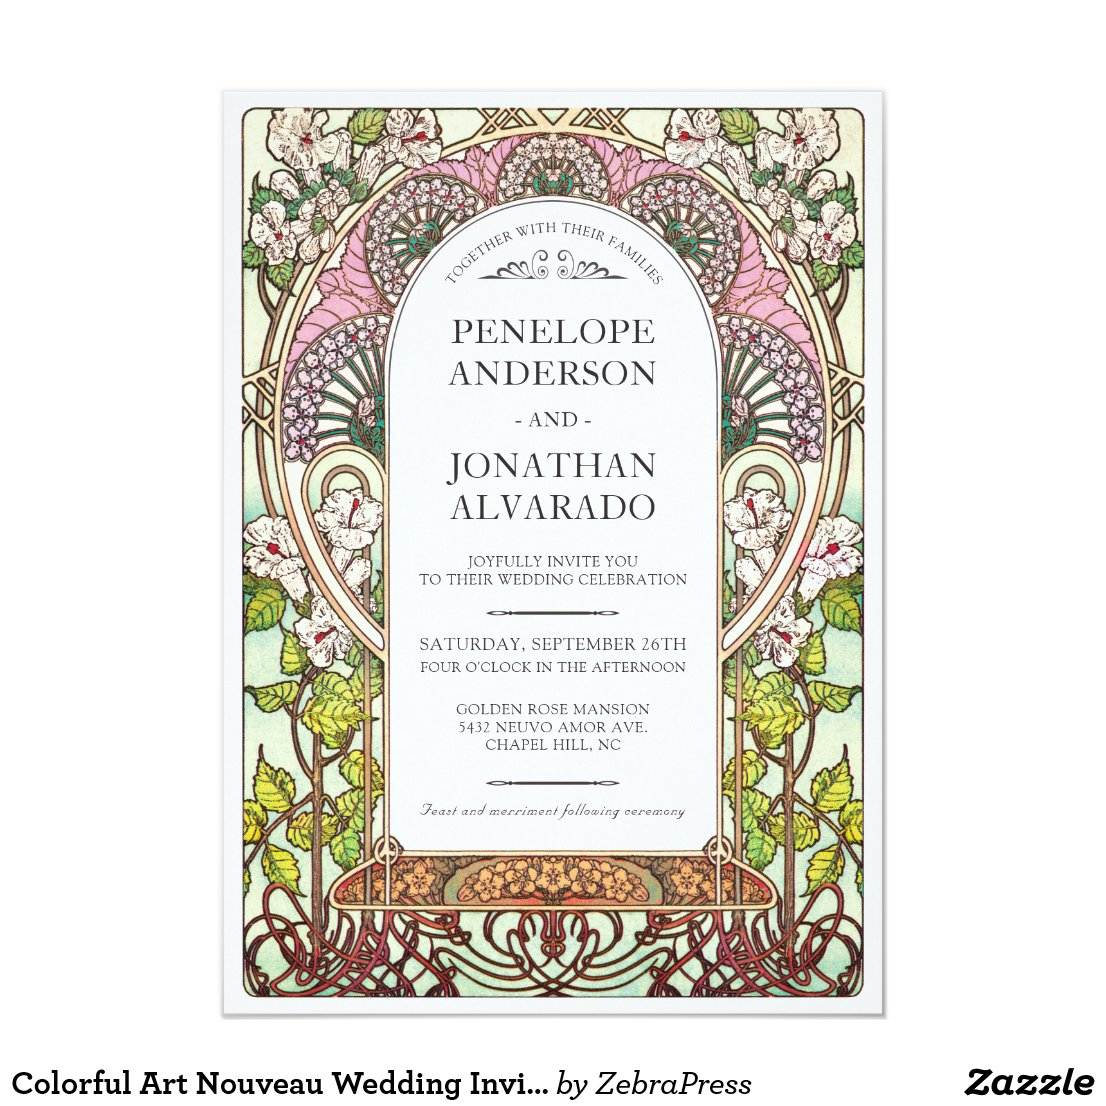 Colorful Art Nouveau Wedding Invitations (Set #9)